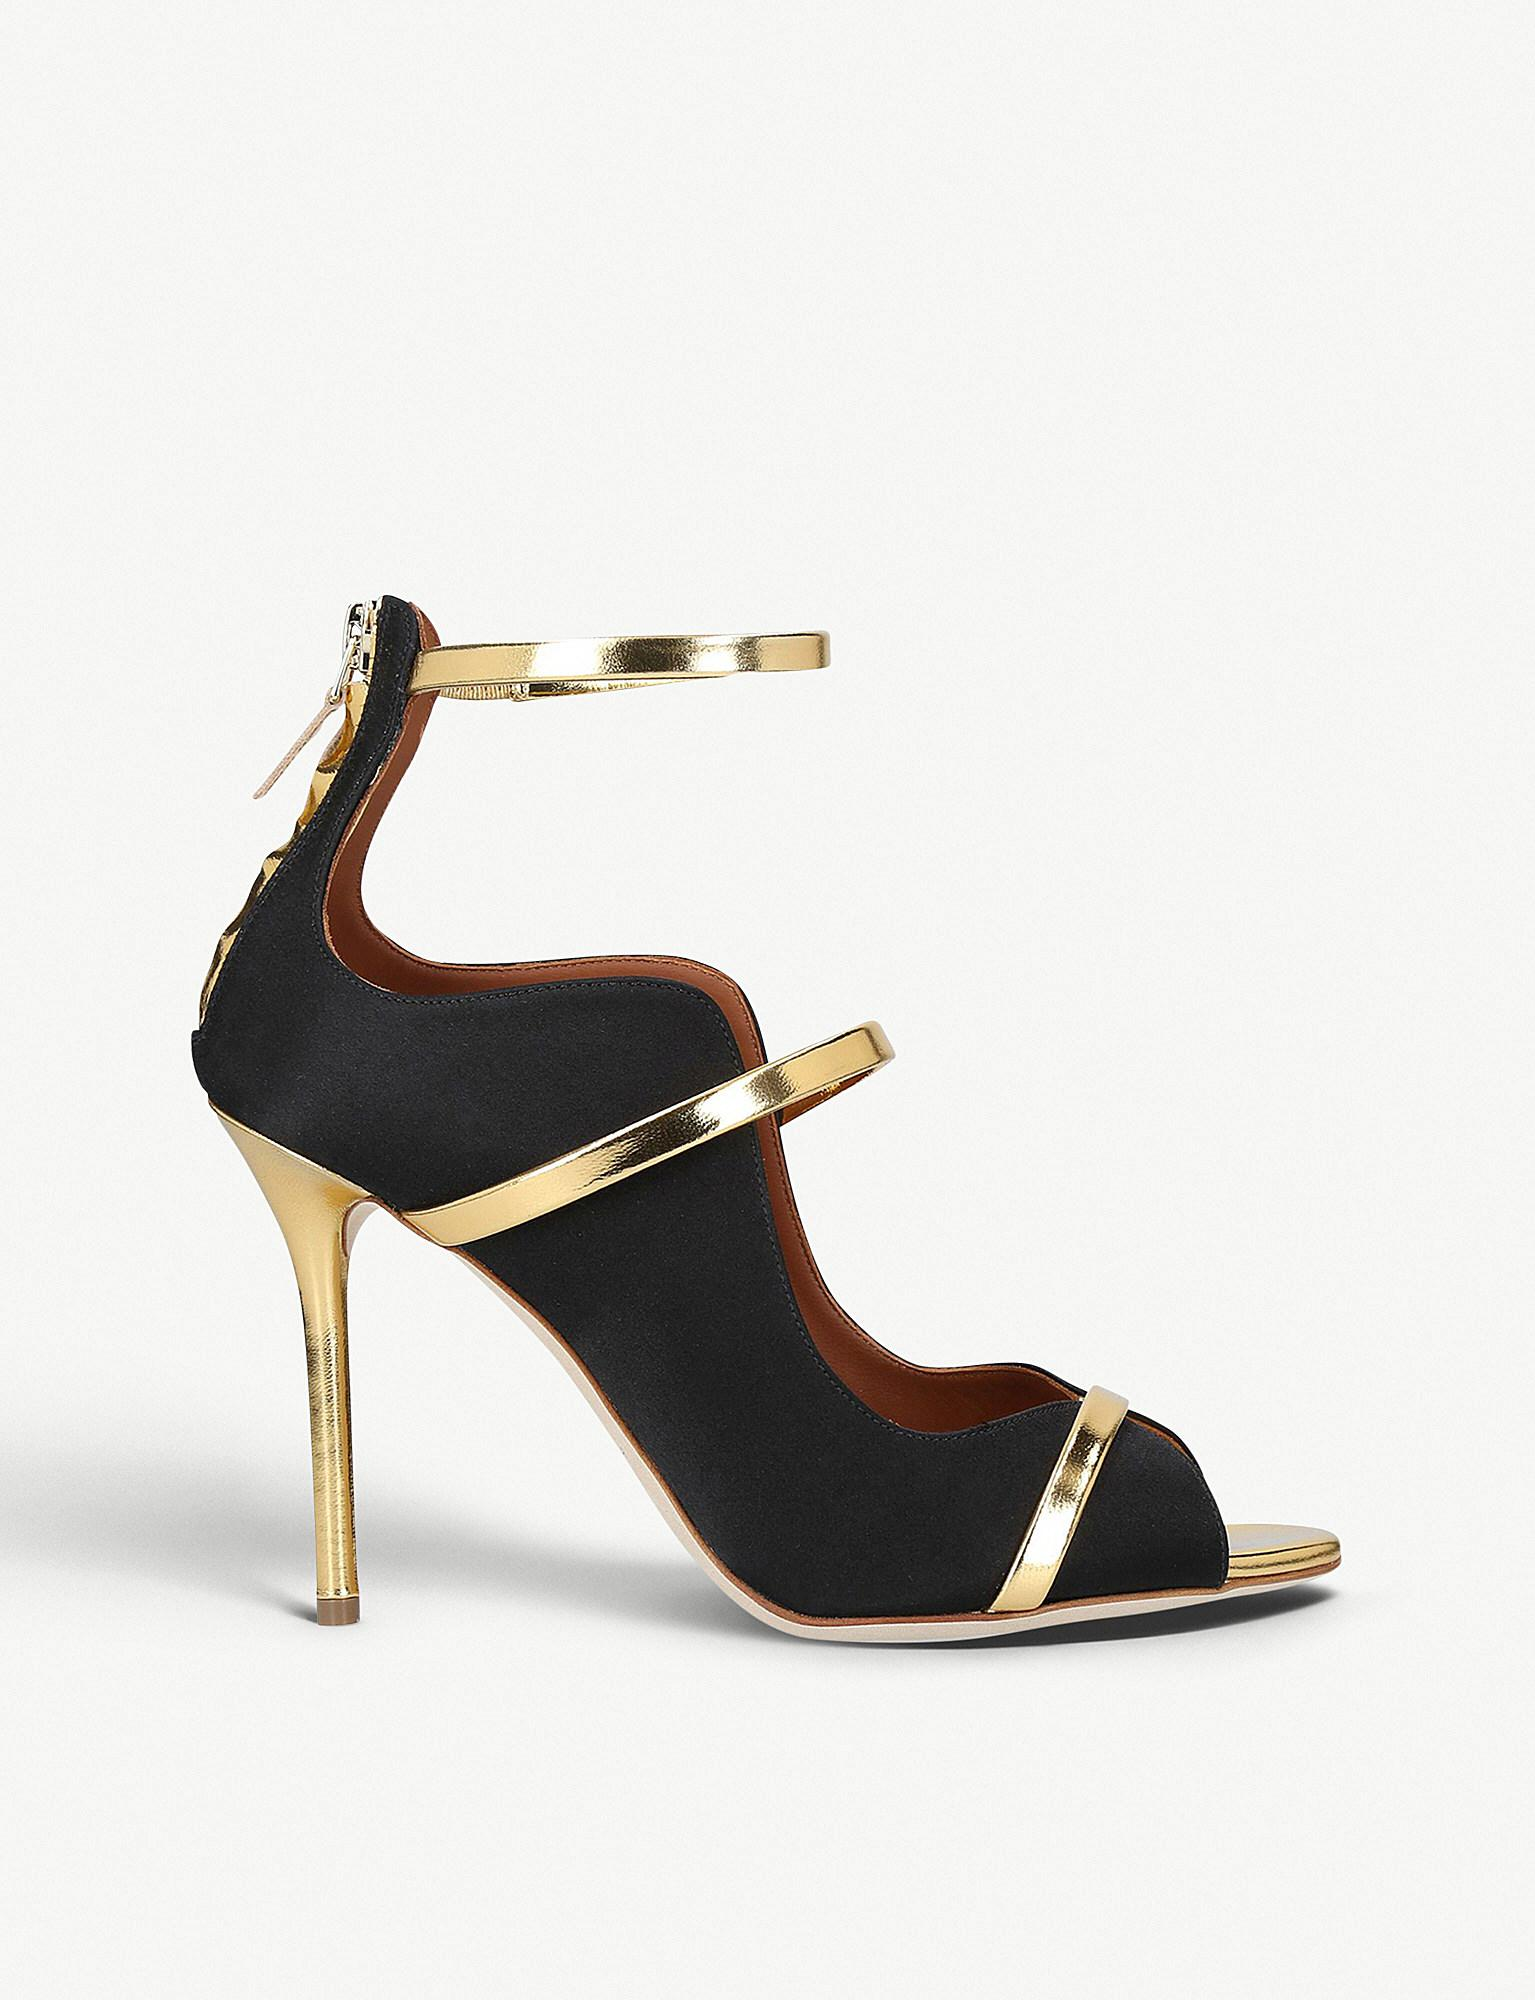 MALONE SOULIERS Mika leather sandals 6AySIPOWW1